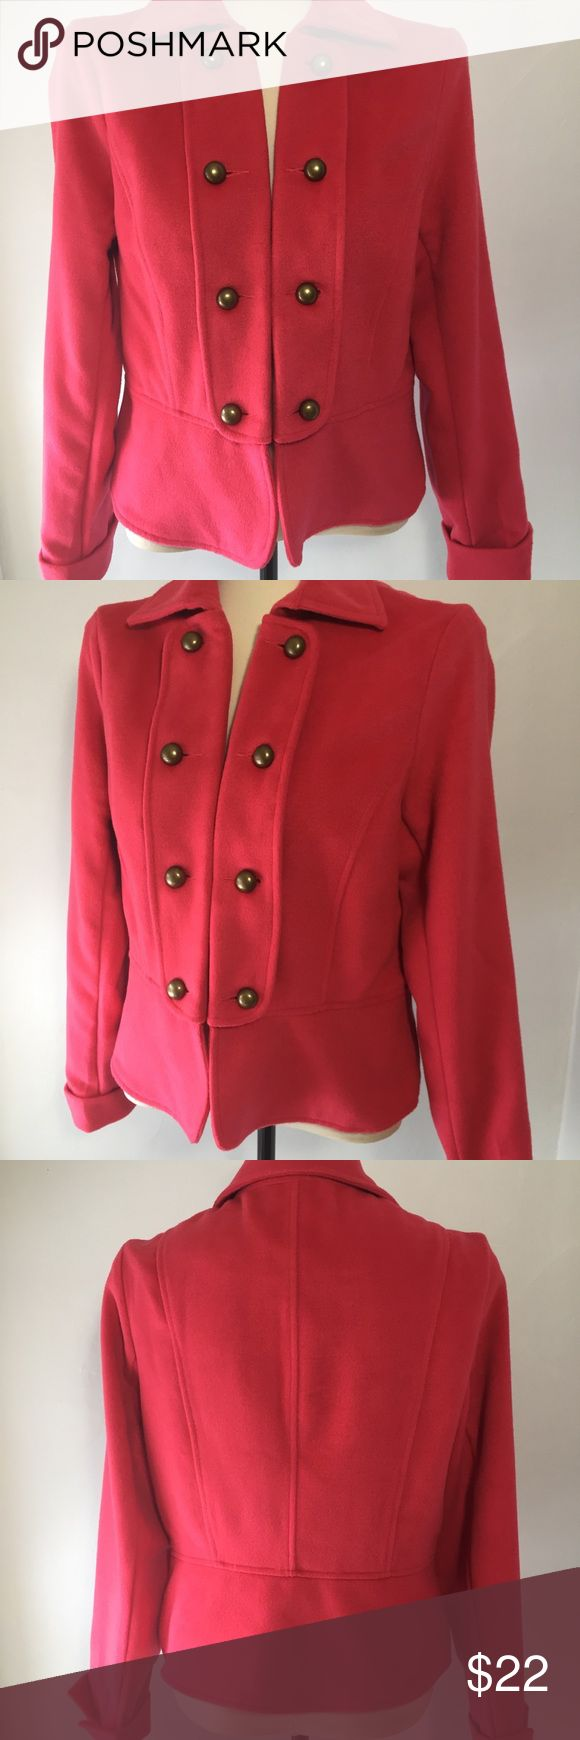 "Dizzy Lizxie Military Style Salmon Jacket Not pink and not peach, a pretty salmon, heavy weight fleece feel, cute as the buttons, jacket. Unique and easily paired with  denim or your favorite skirt. Hook and eye closure. In EUC.  Fully lined.  21"" p2p. 21"" long. Poly/wool blend Dizzy Lizzie Jackets & Coats"